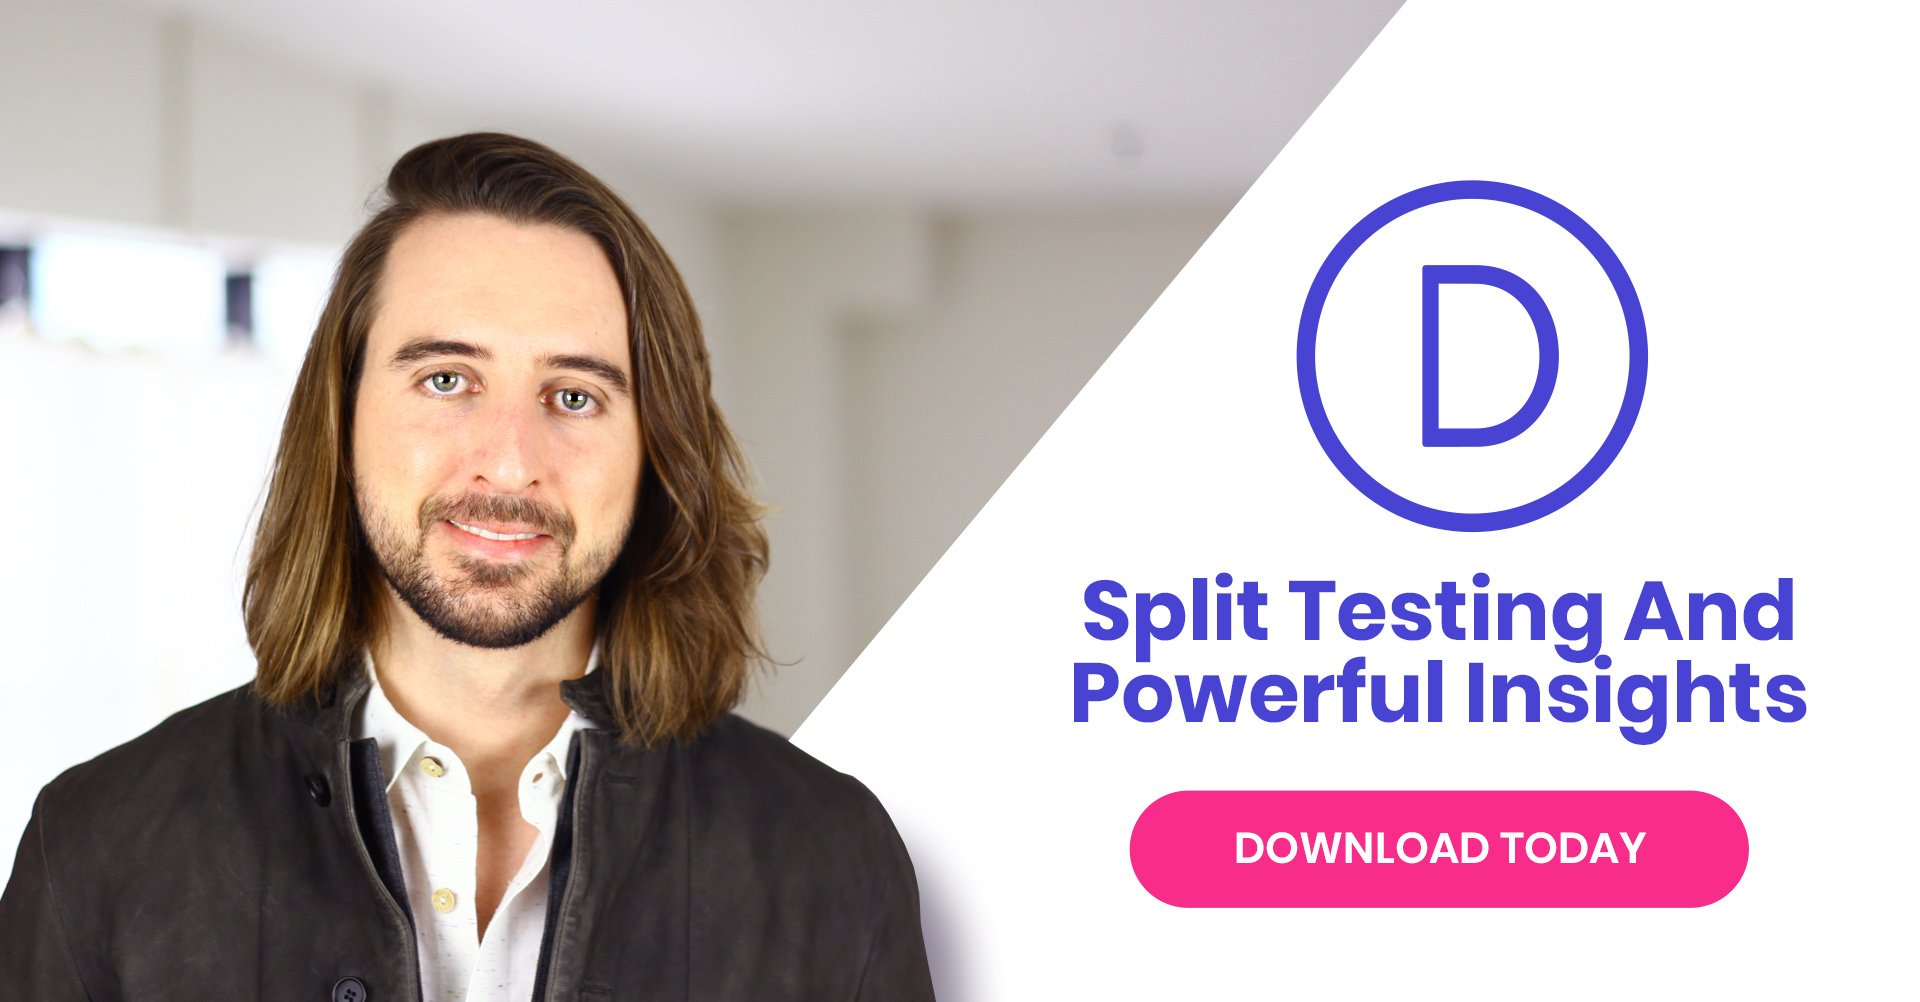 Divi Feature Update! Introducing Split Testing And Powerful Insights For The Visual Builder